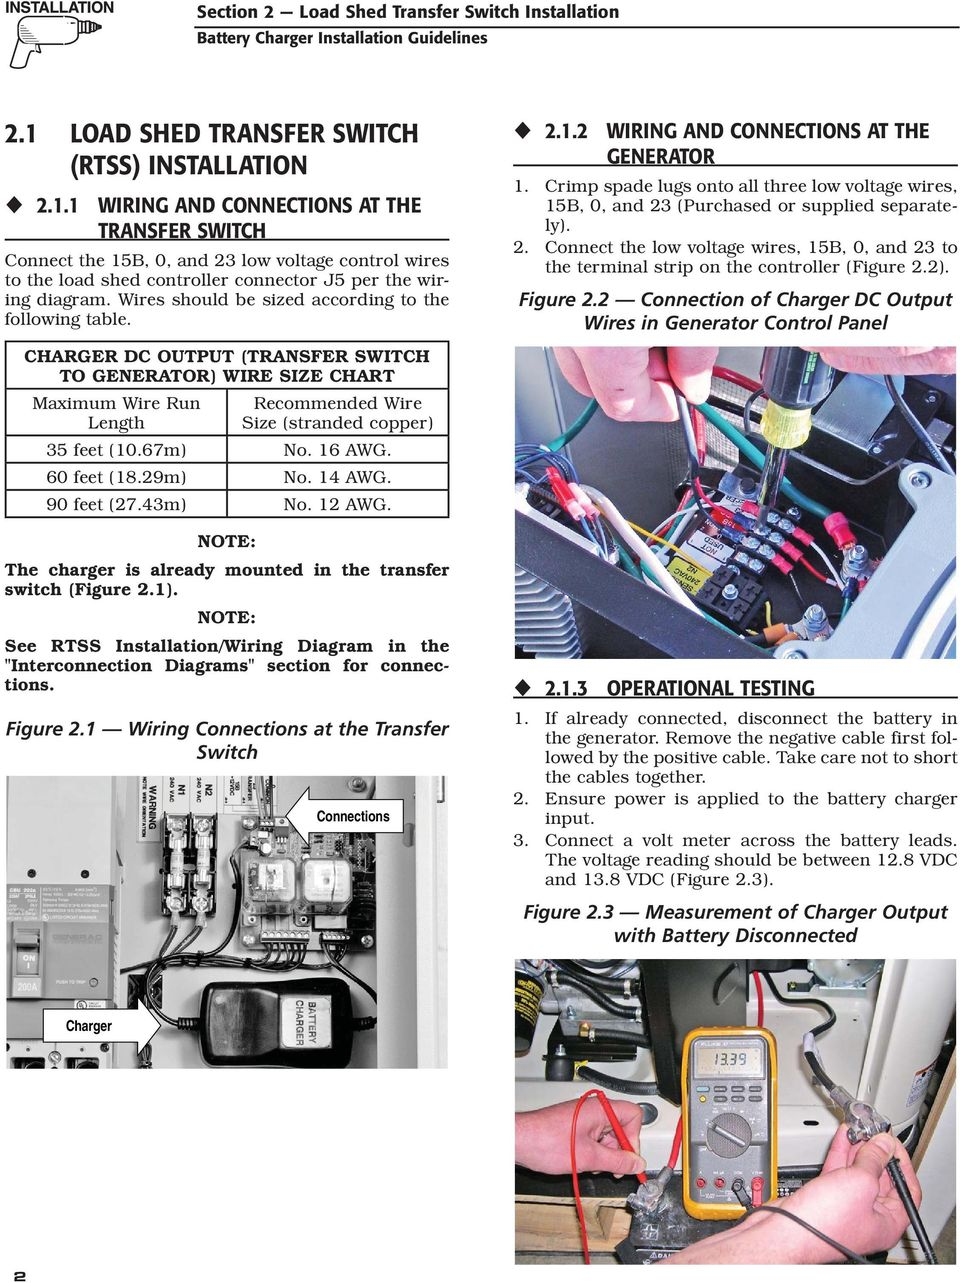 Air-cooled Generator Battery Charger Installation Guidelines - PDF